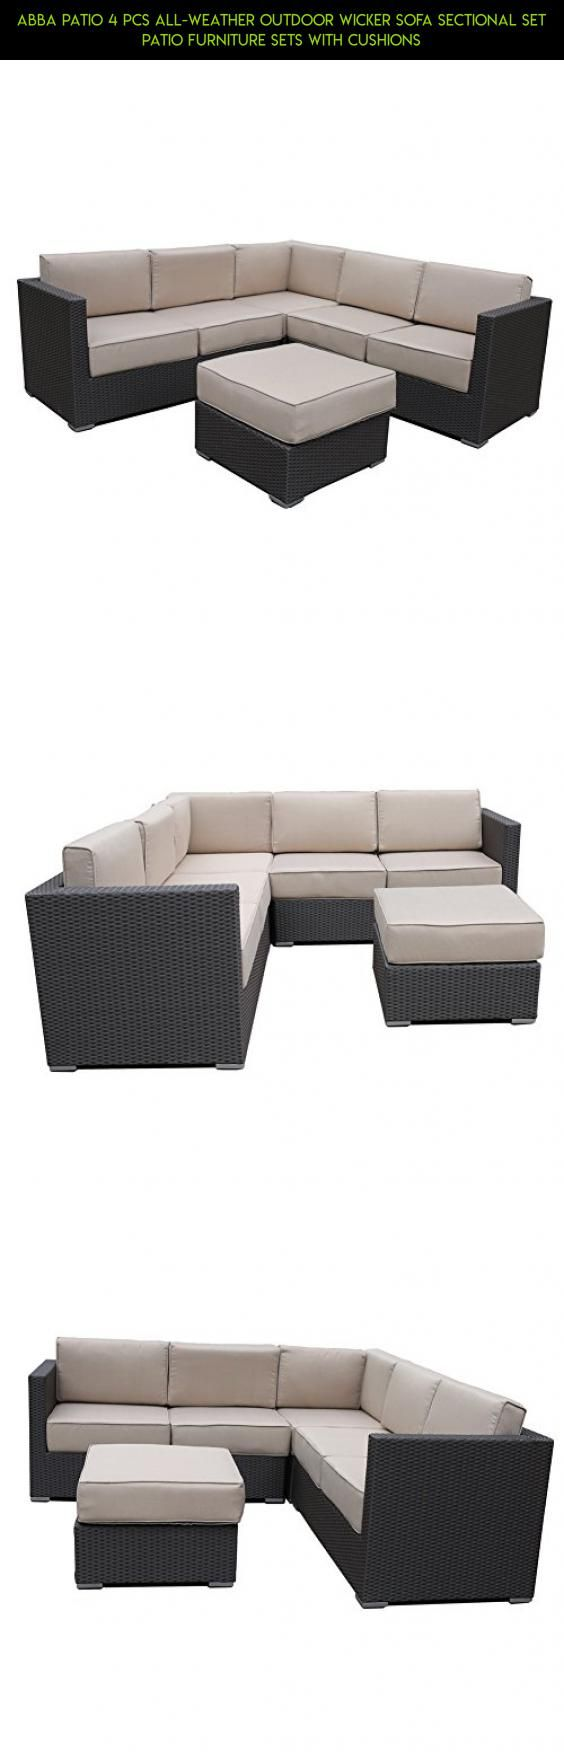 Abba Patio 4 Pcs All-Weather Outdoor Wicker Sofa Sectional Set Patio Furniture Sets with Cushions #drone #camera #products #furniture #fpv #clearance #end #technology #tech #tables #plans #patio #gadgets #racing #parts #shopping #kit